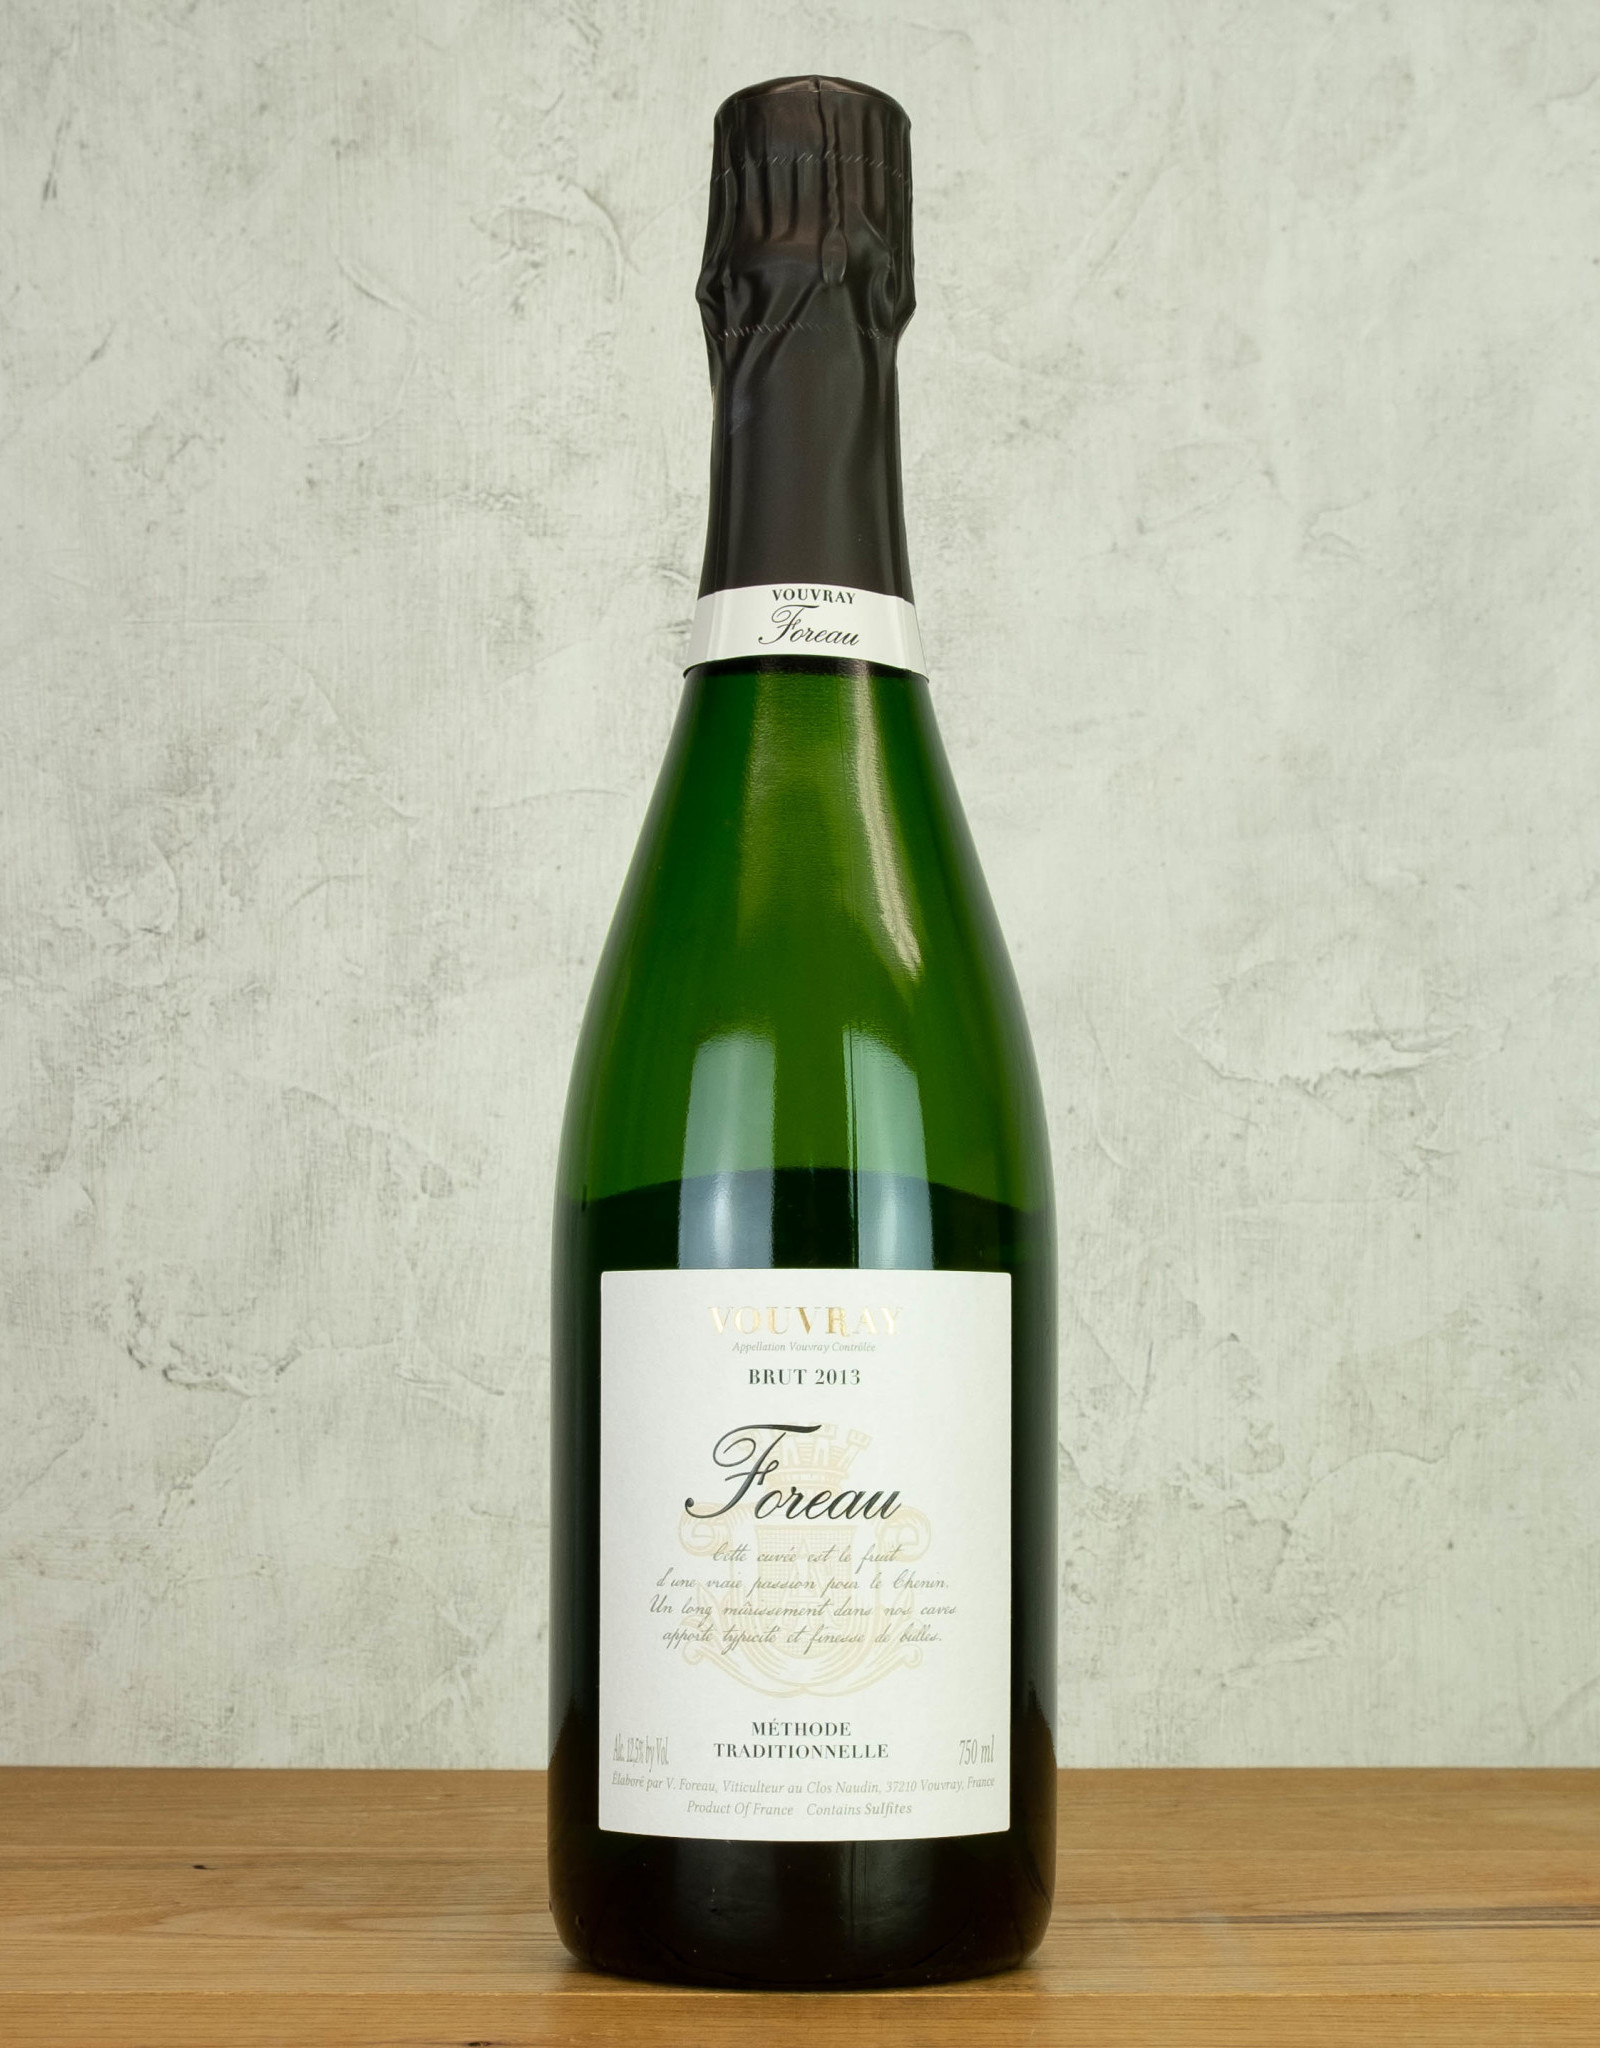 Foreau Vouvray Brut 2014